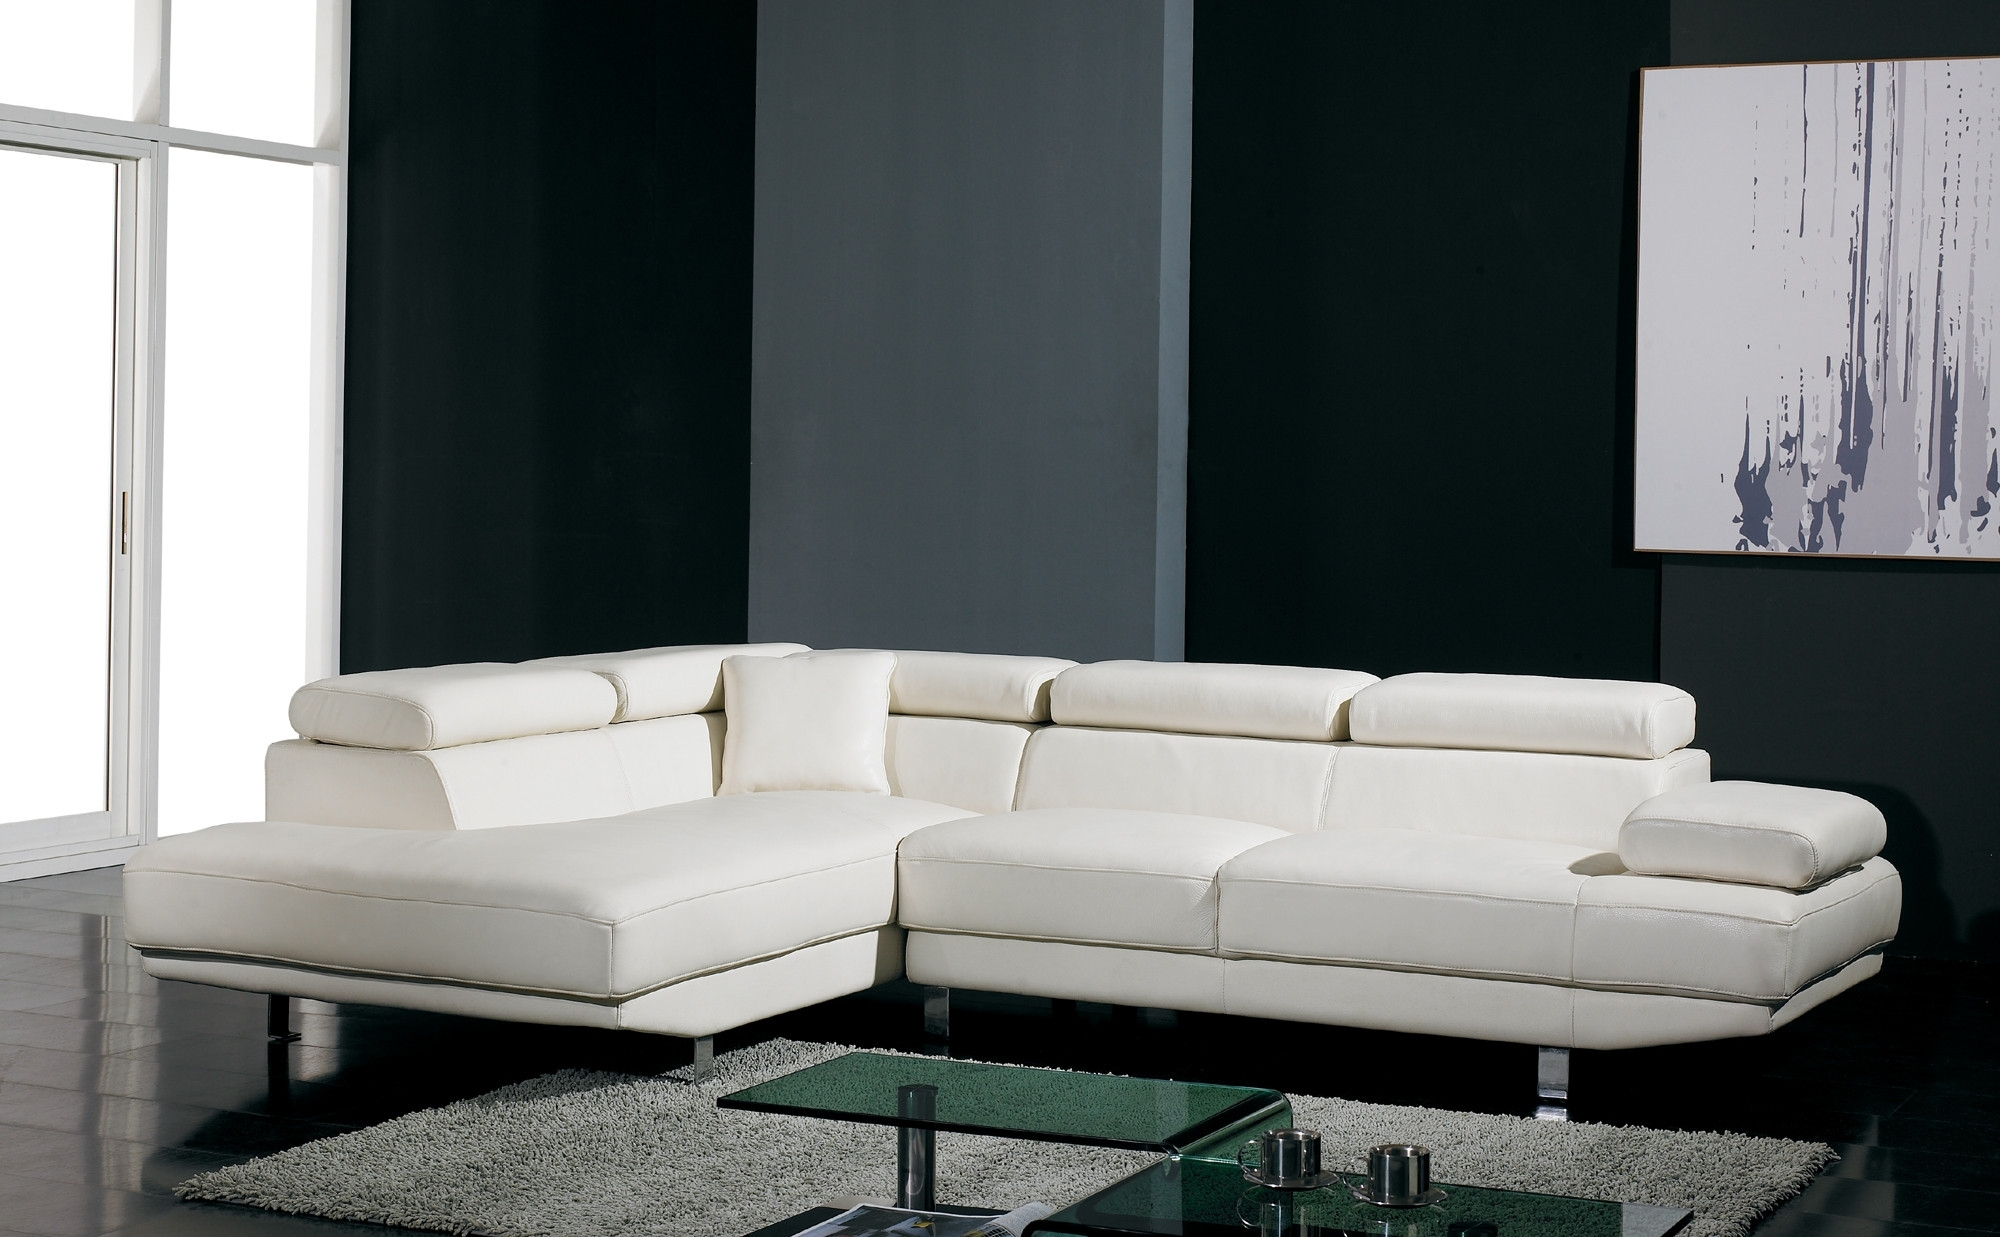 Newest White Leather Sectionals With Chaise Intended For T60 Ultra Modern White Leather Sectional Sofa (View 8 of 15)